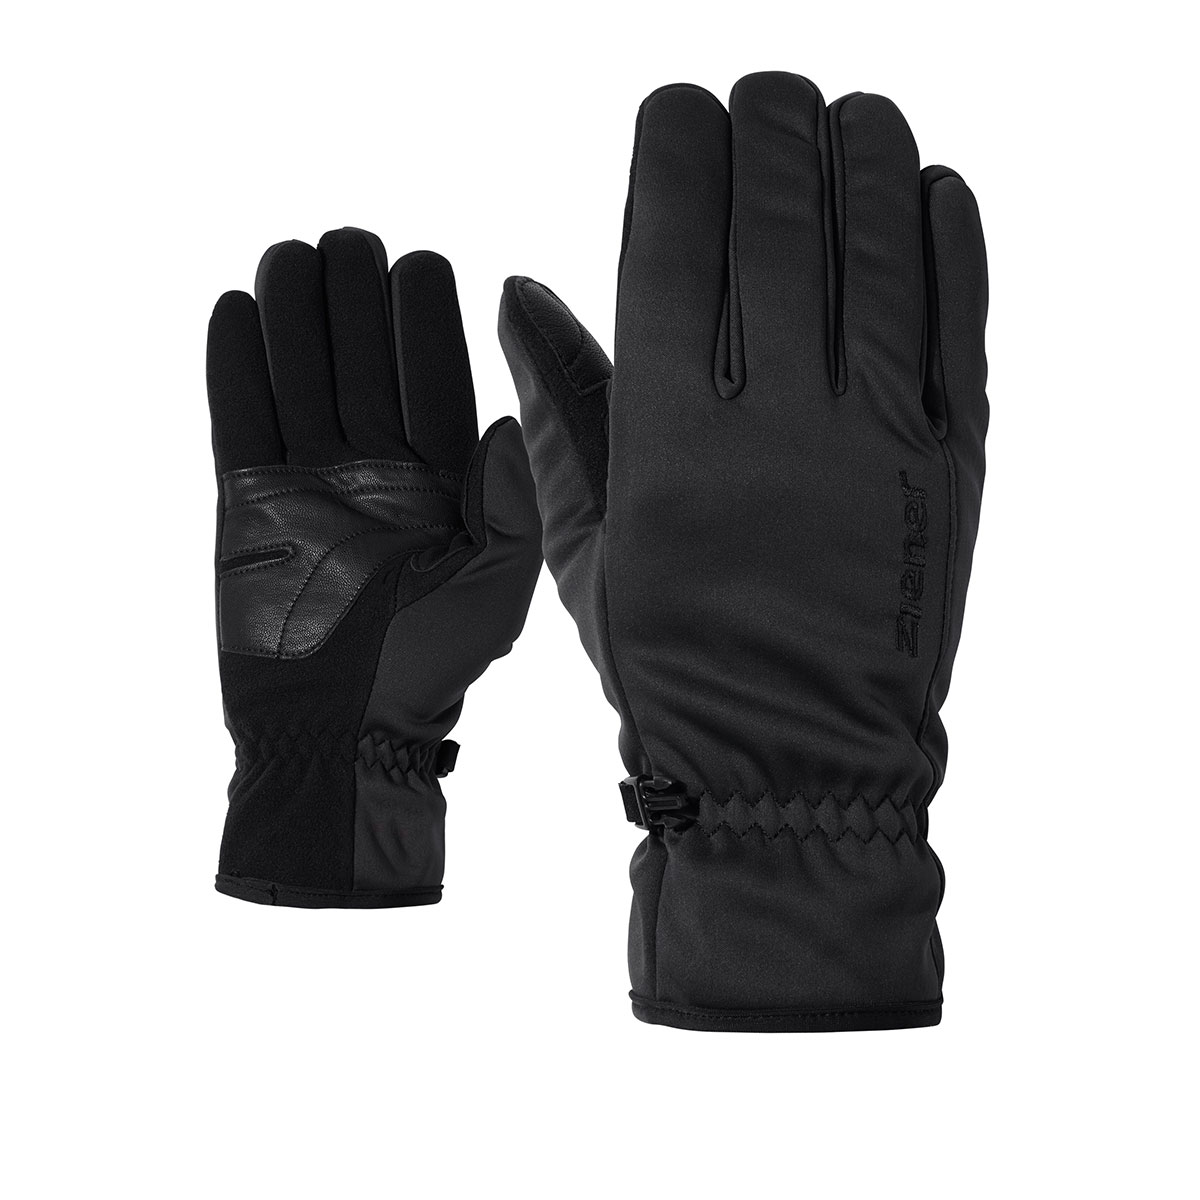 italian gws touch glove multisport ziener gloves. Black Bedroom Furniture Sets. Home Design Ideas